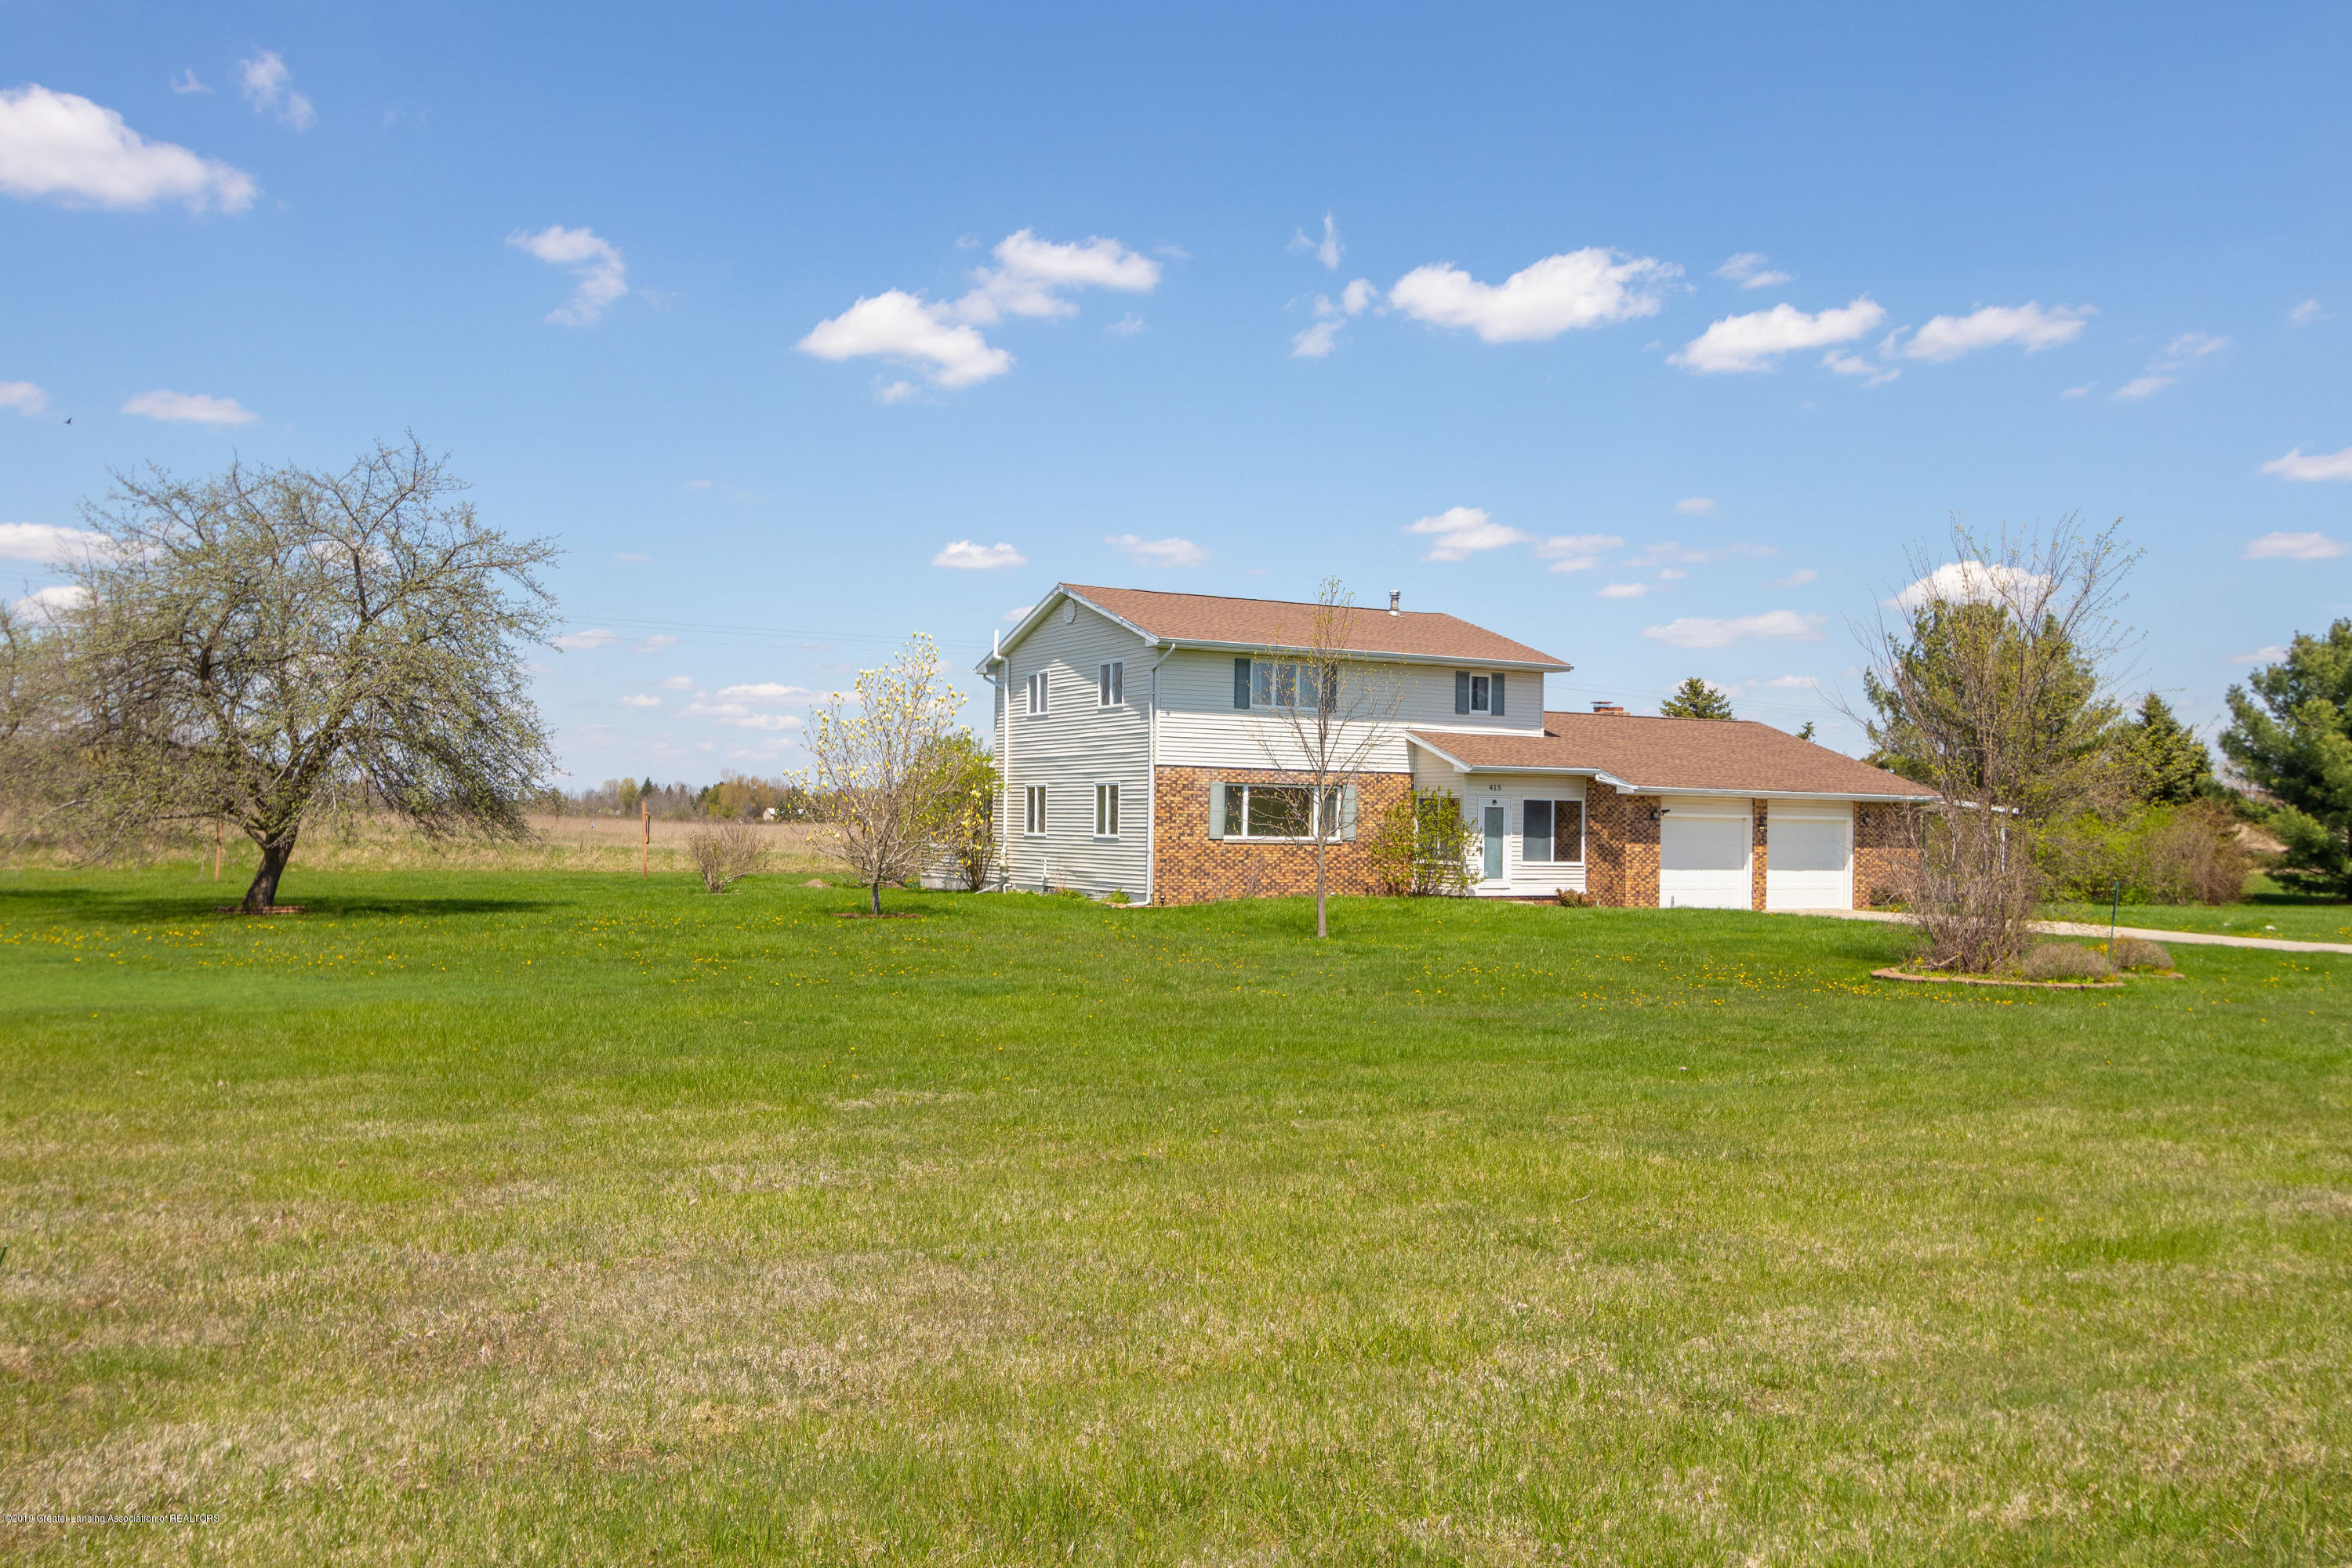 415 Holt Rd - Welcome home! - 45